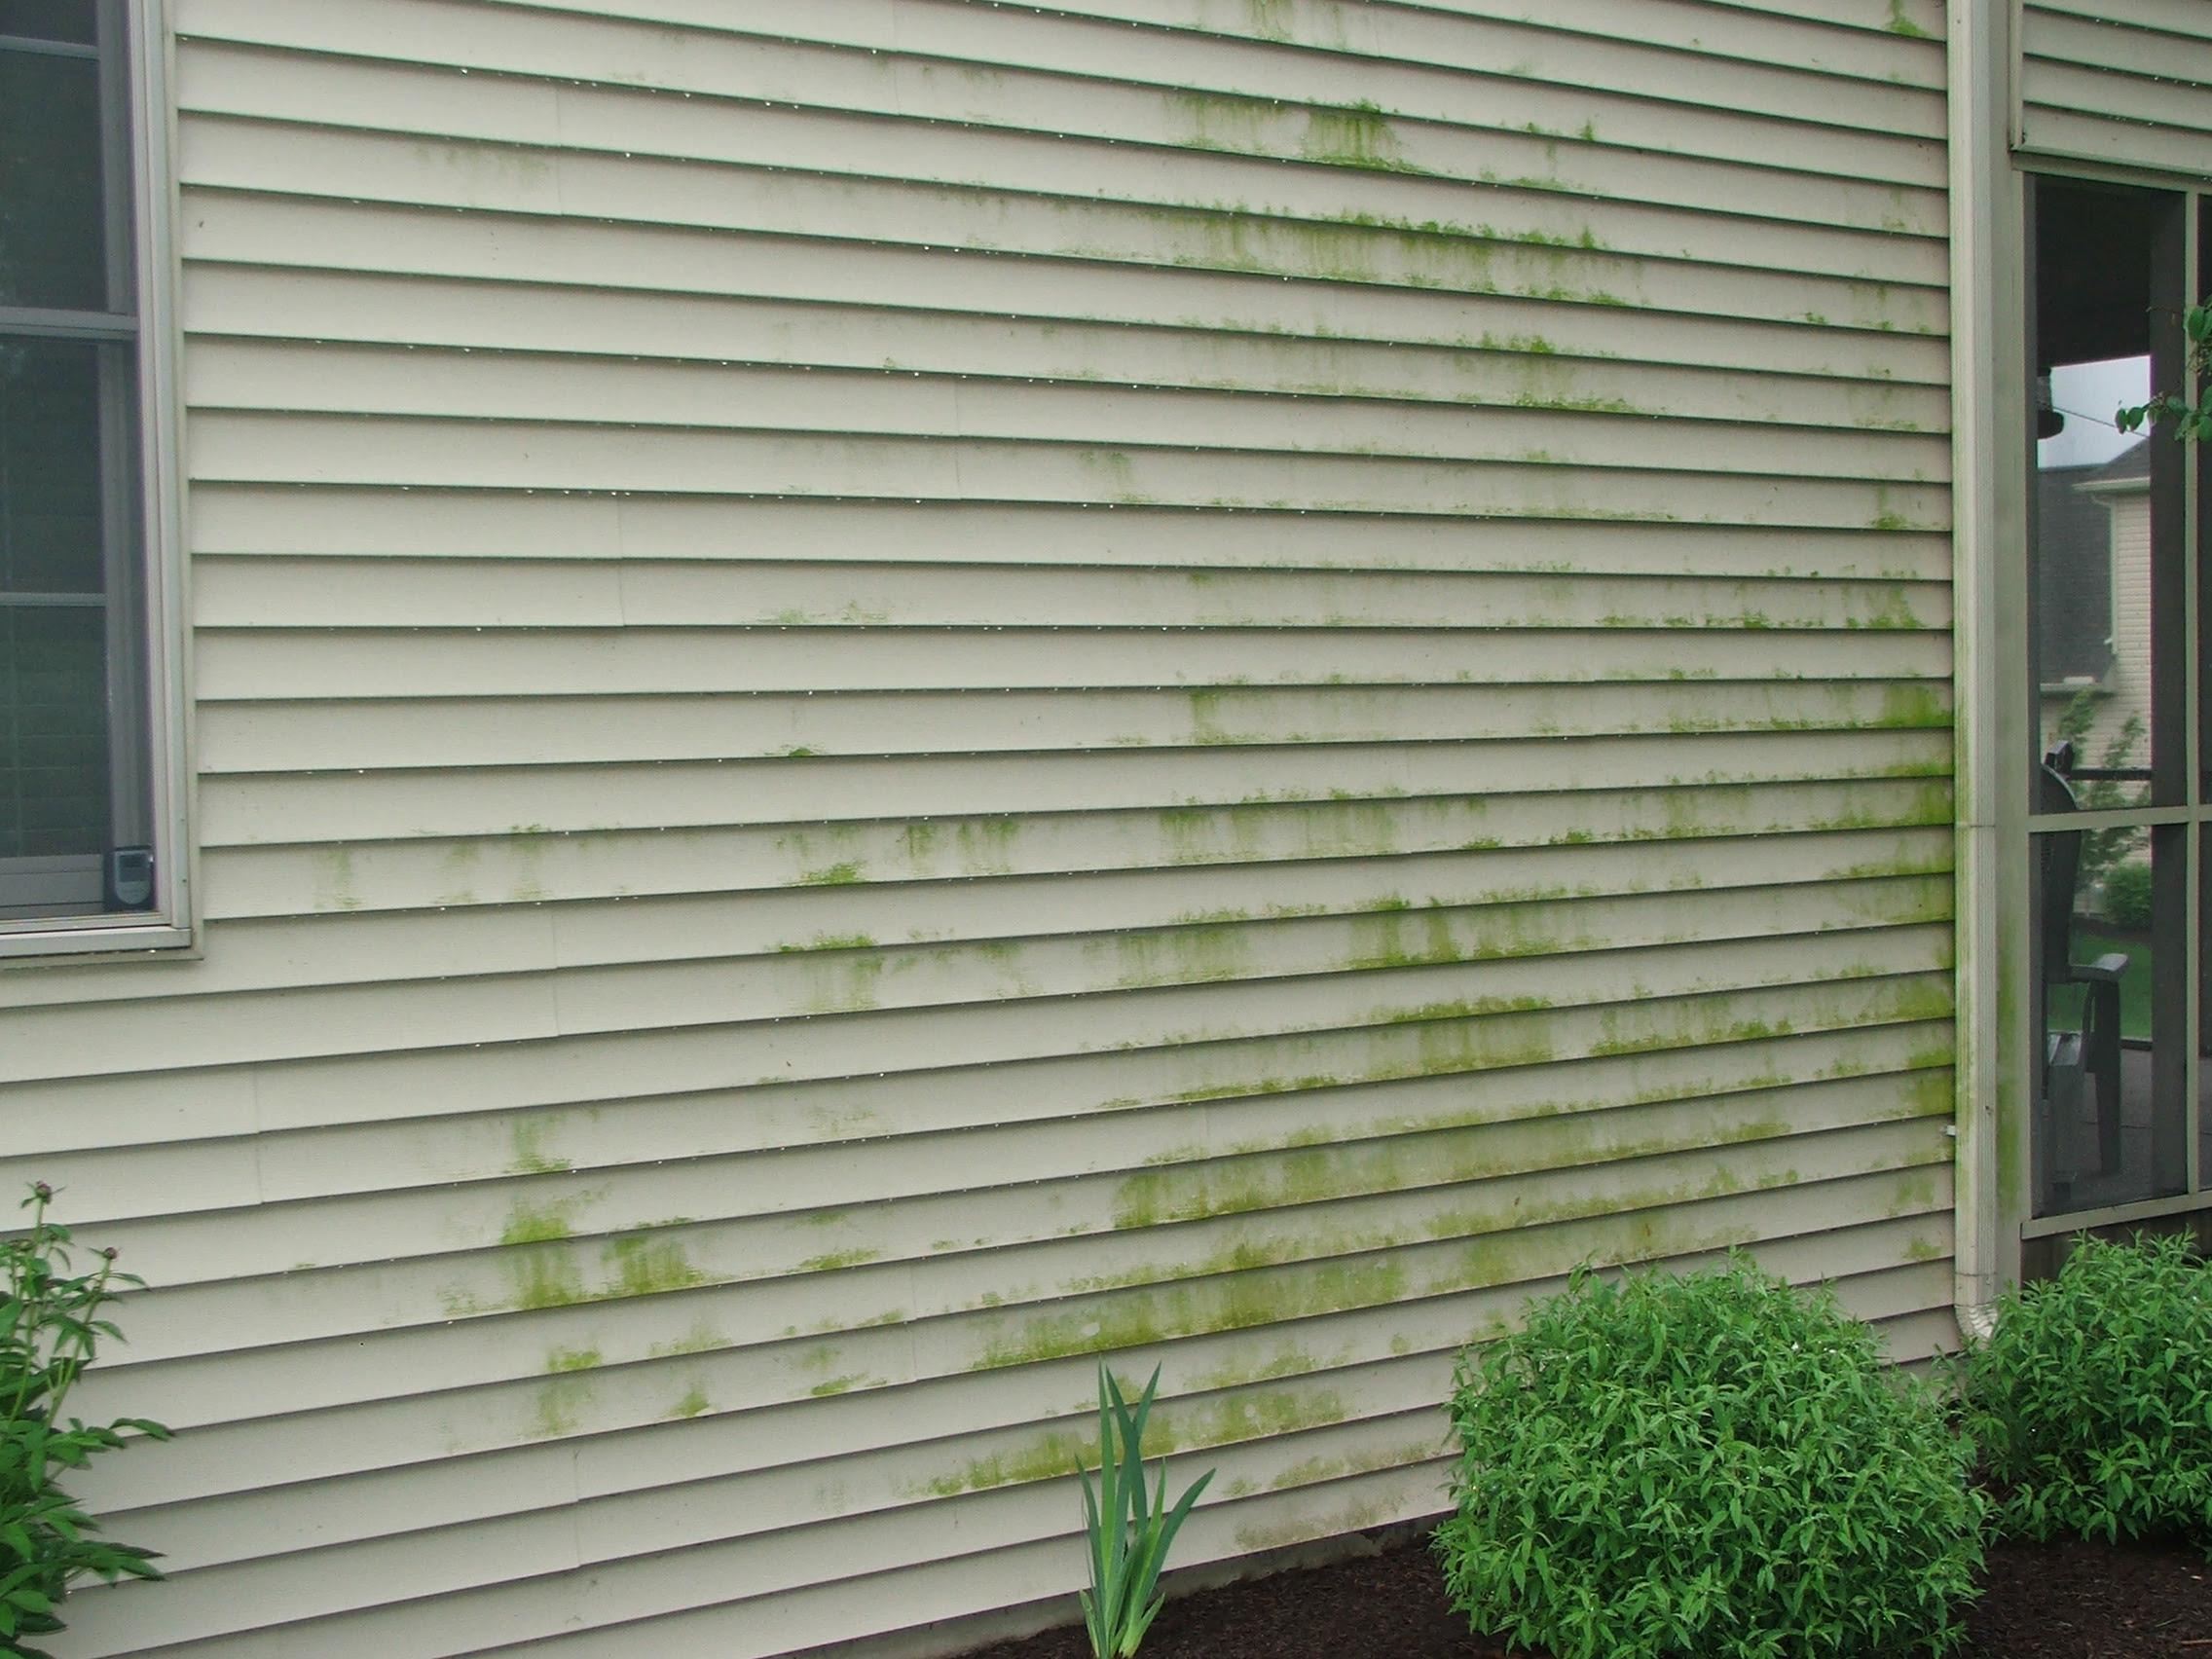 Siding Removal Process: Is it Necessary to Remove All Old Siding? - Modernize